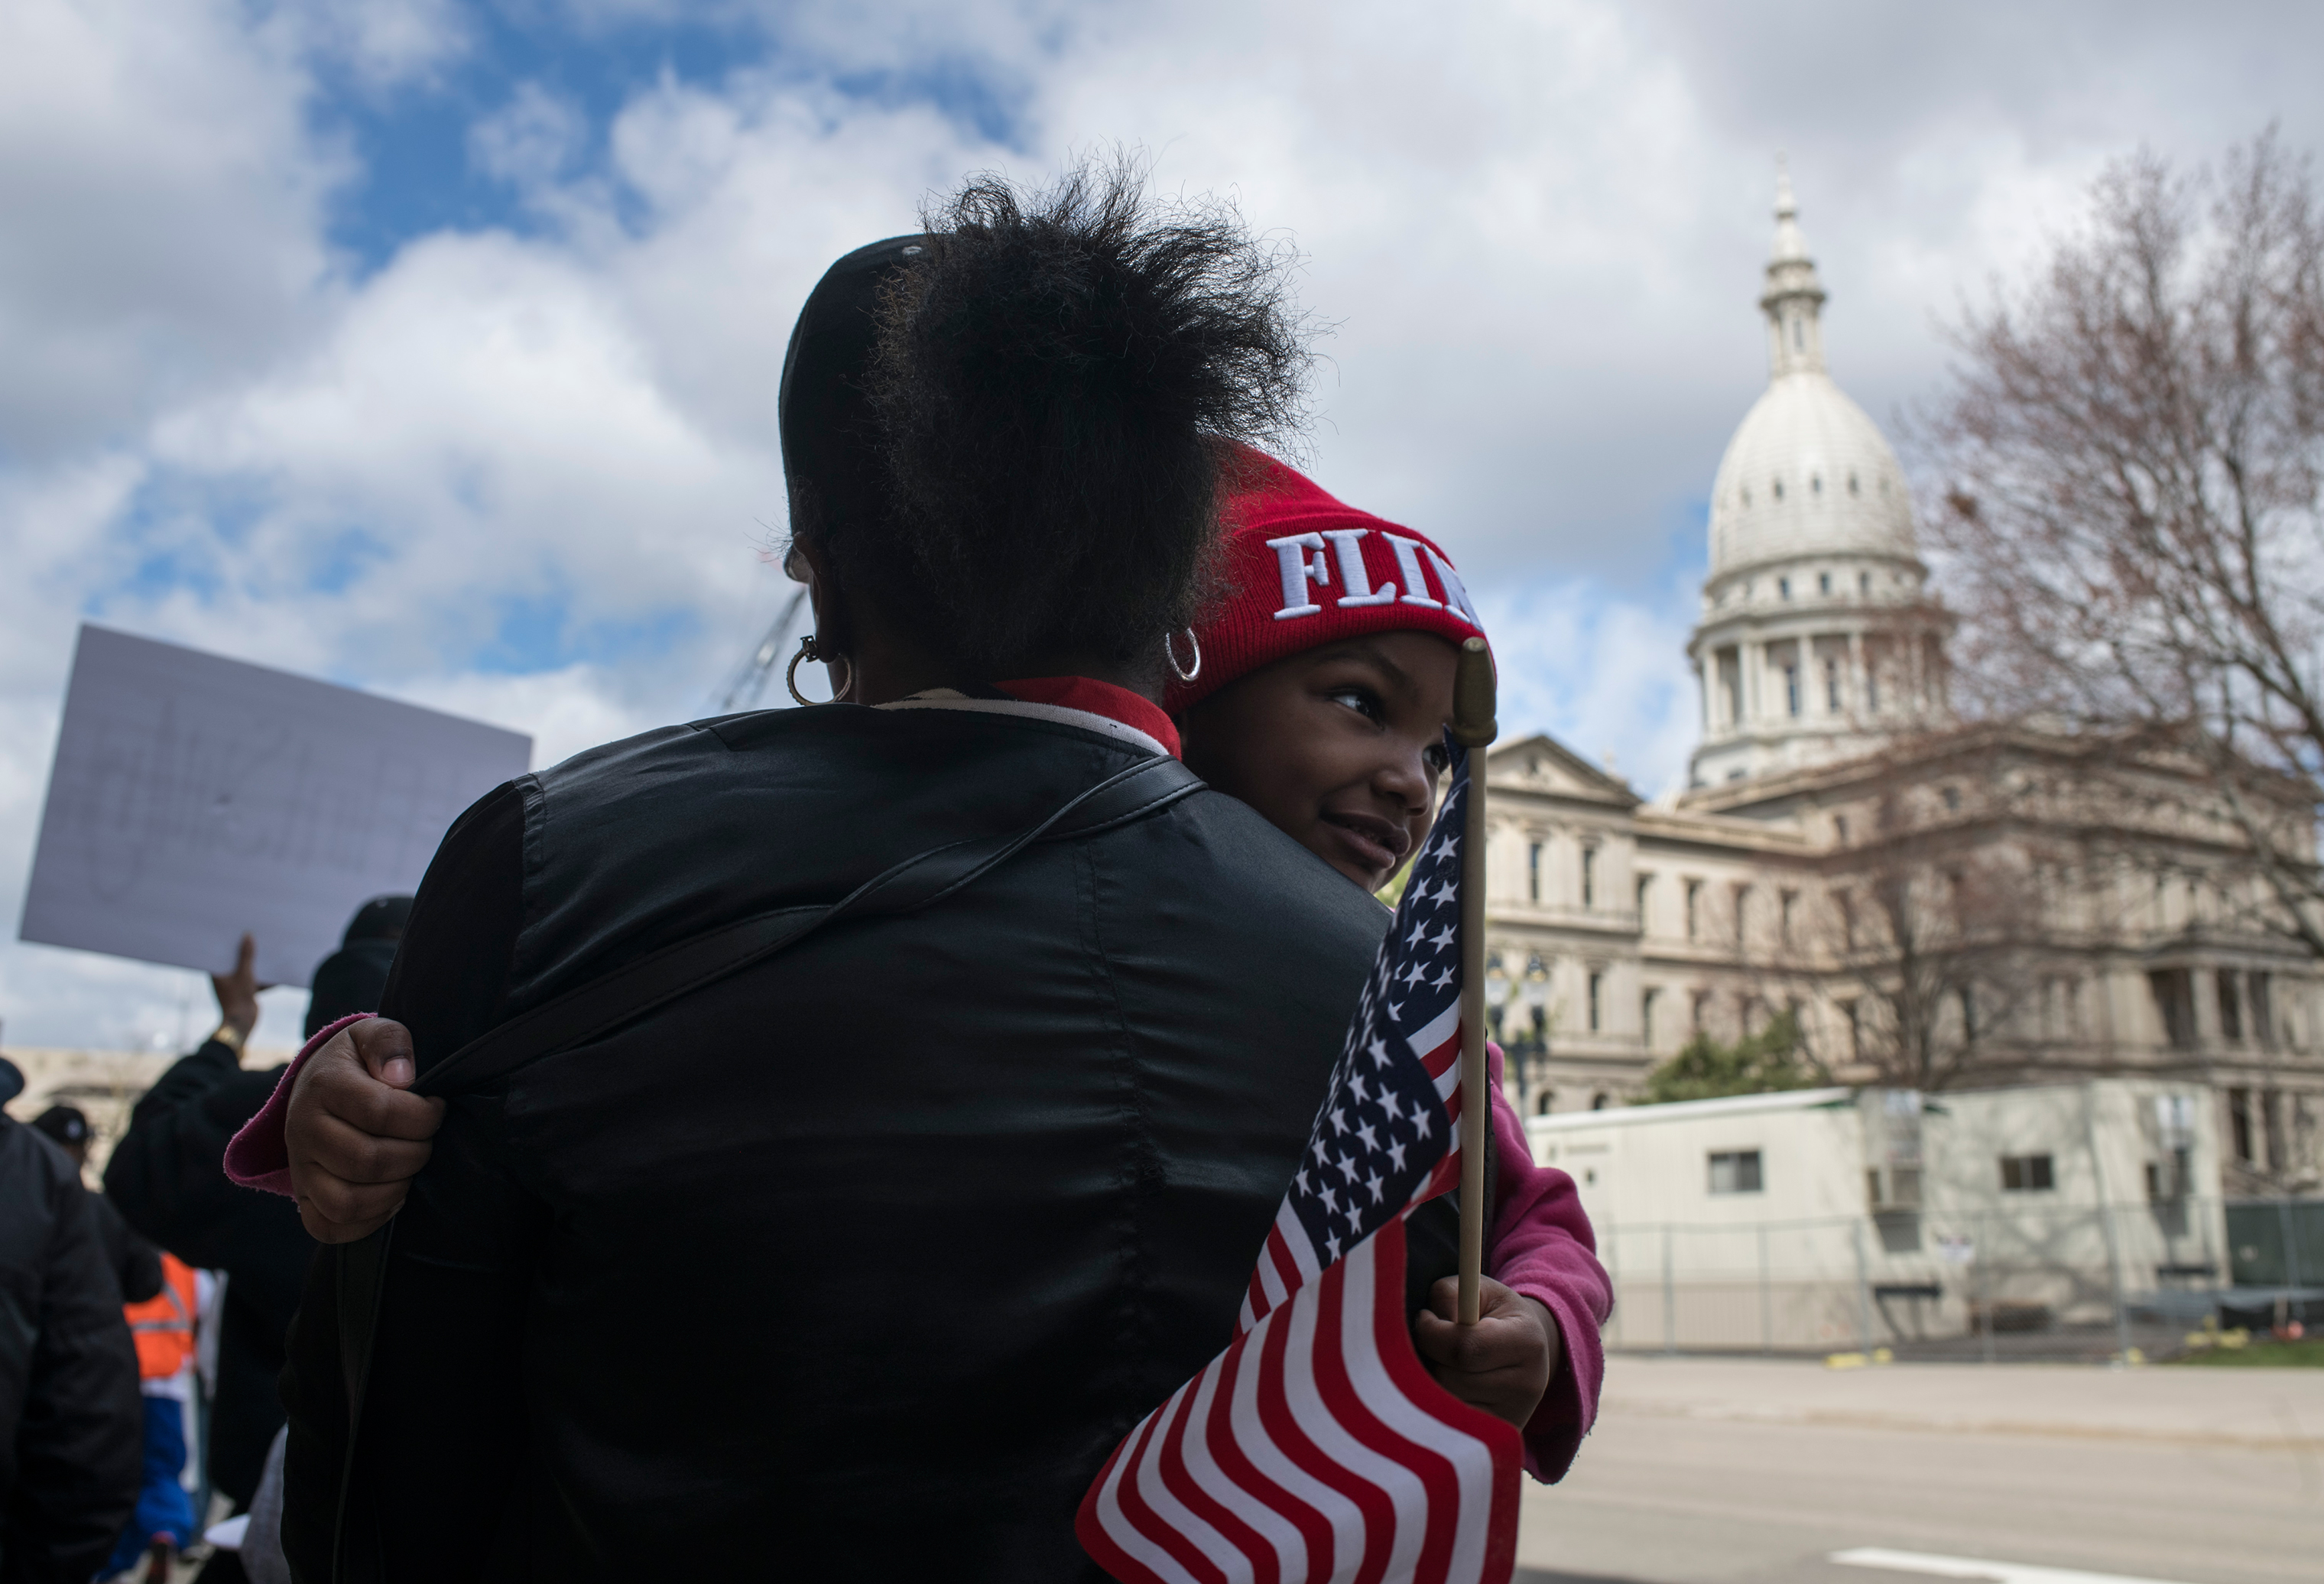 On the fourth anniversary of the water switch that caused the lead pollution, Hawk and daughter Aliana joined other Flint residents last year protesting at the Michigan state capitol.